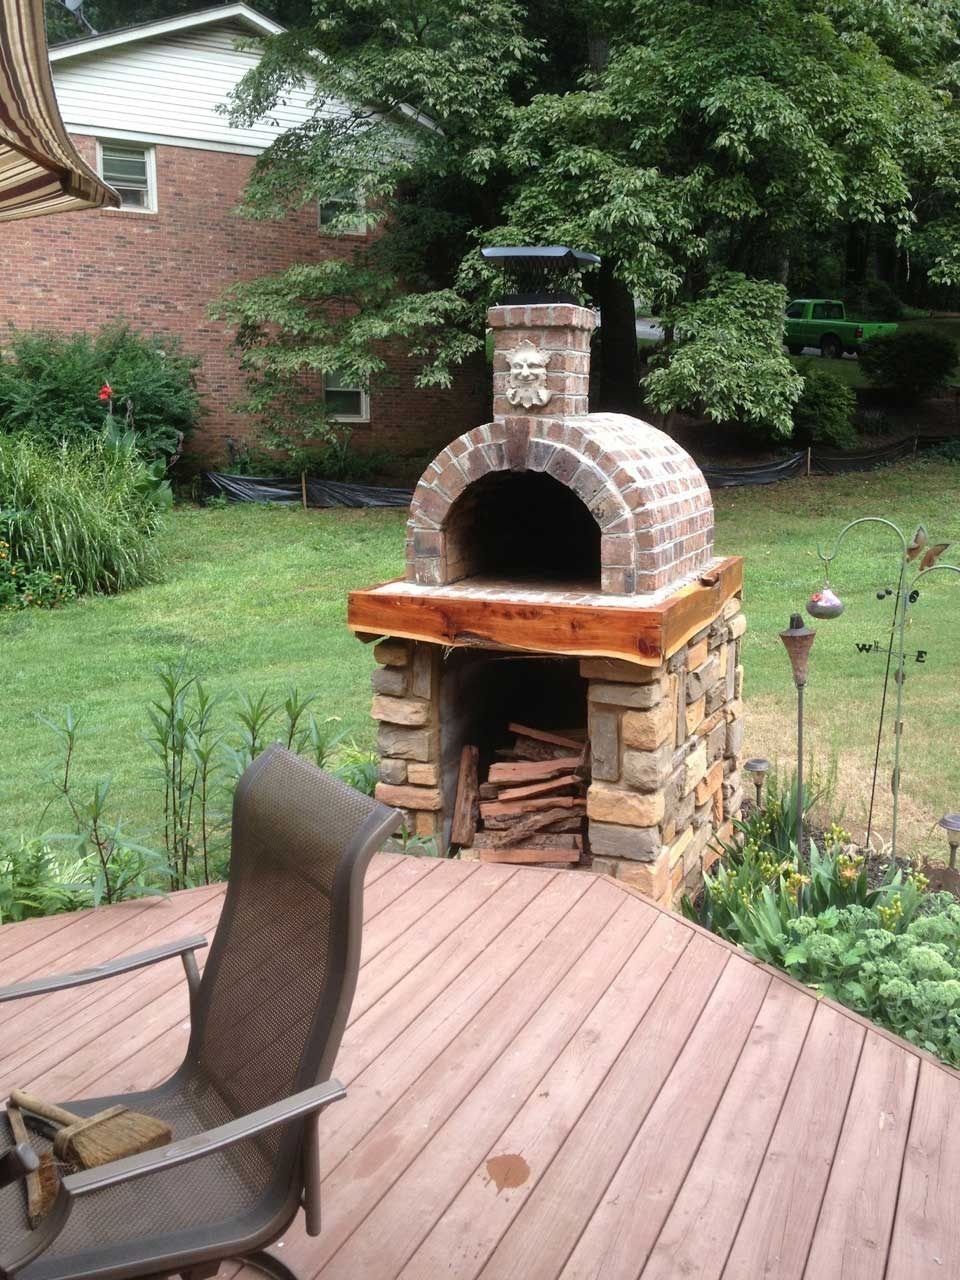 The Shiley Family Wood Fired Brick Pizza Oven in South Carolina. Built with  the Mattone Barile DIY Pizza Oven form by BrickWood Ovens. - The Shiley Family Wood Fired Brick Pizza Oven In South Carolina